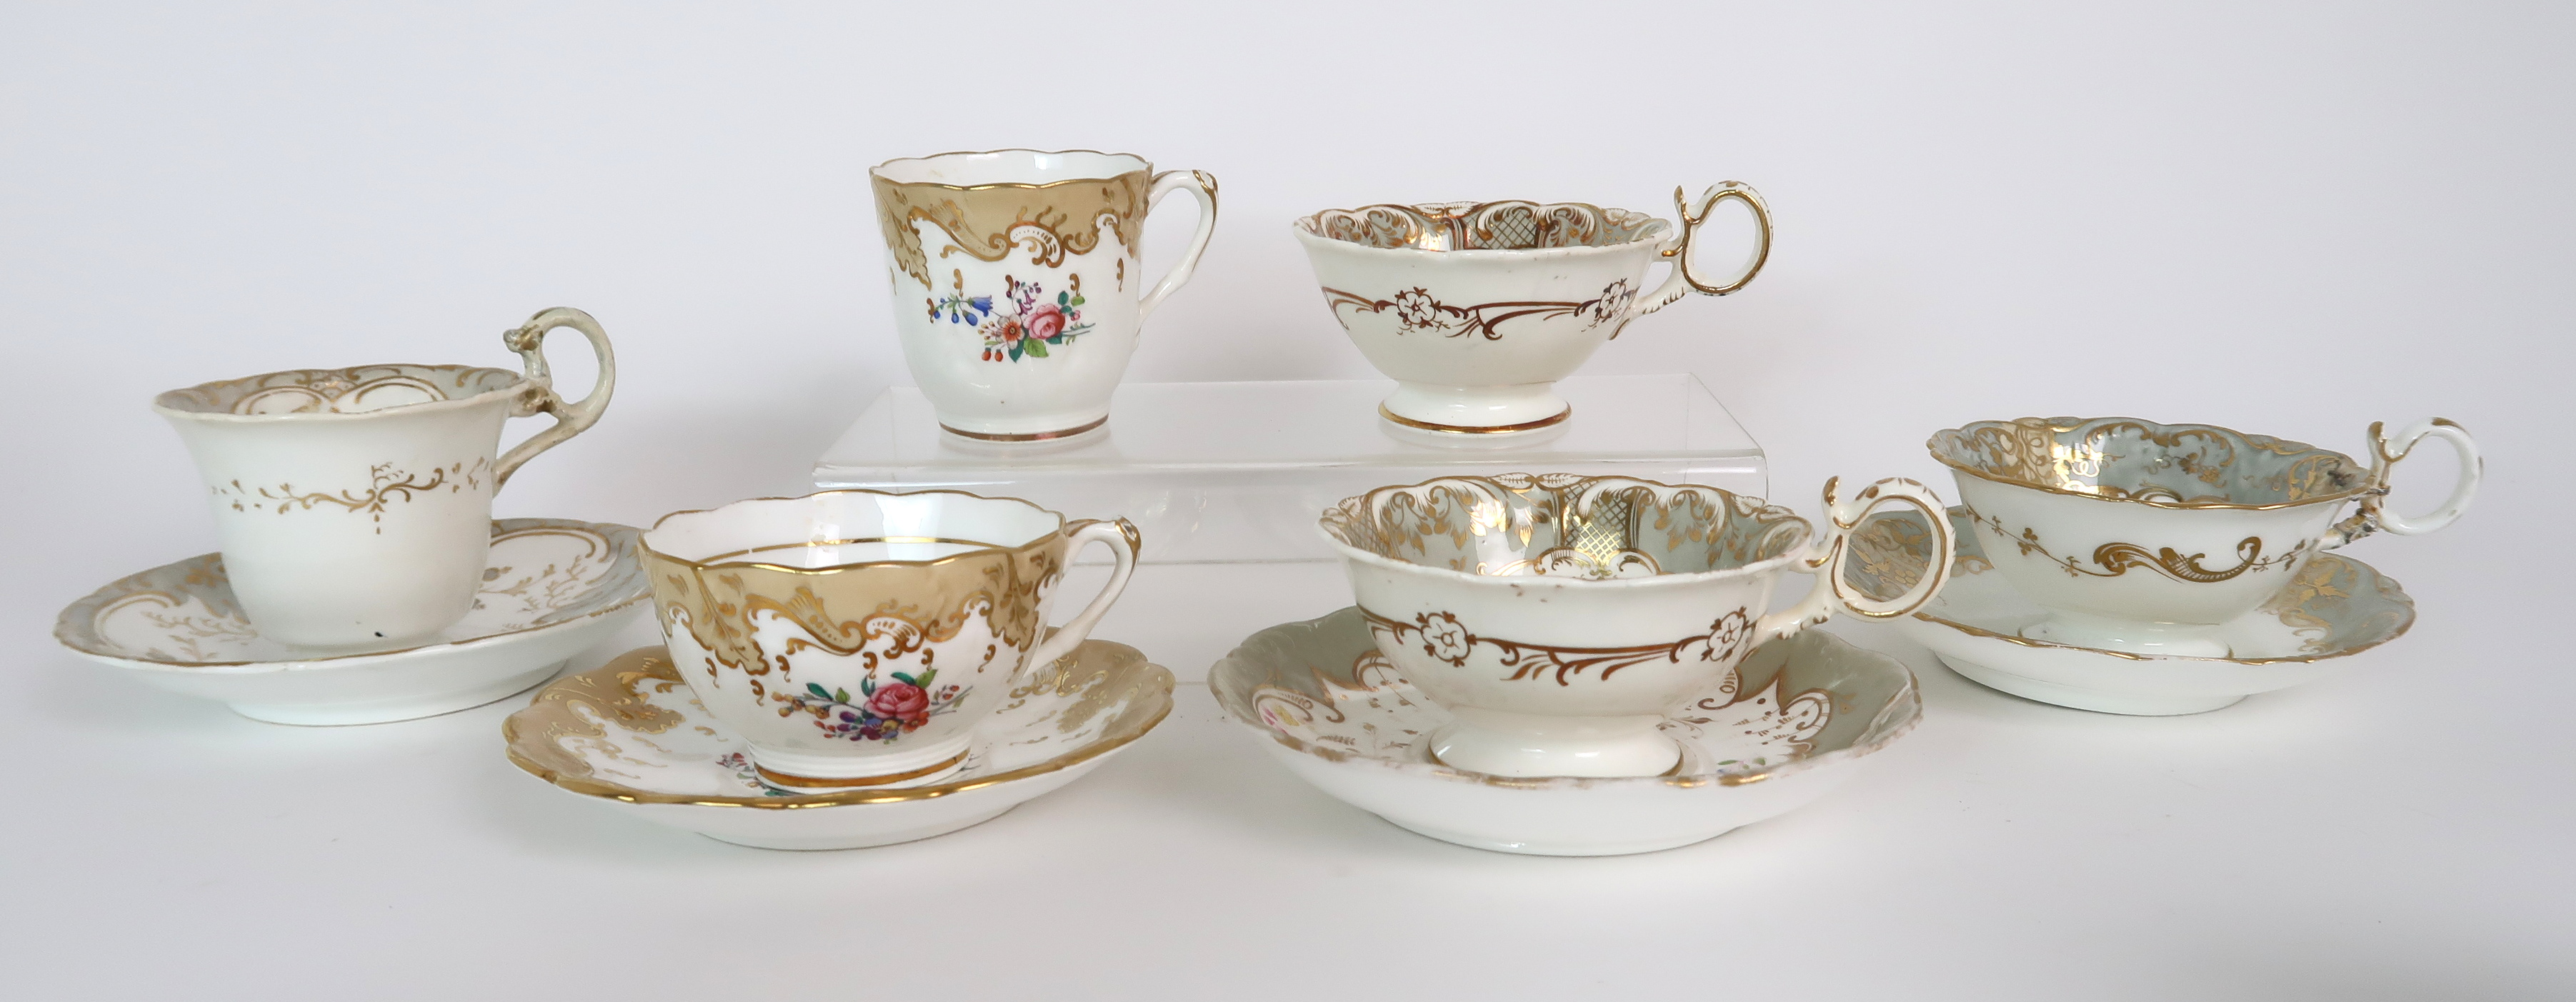 A COLLECTION OF 19TH CENTURY ENGLISH TEA AND COFFEE WARES the white ground with either grey and gilt - Image 16 of 22